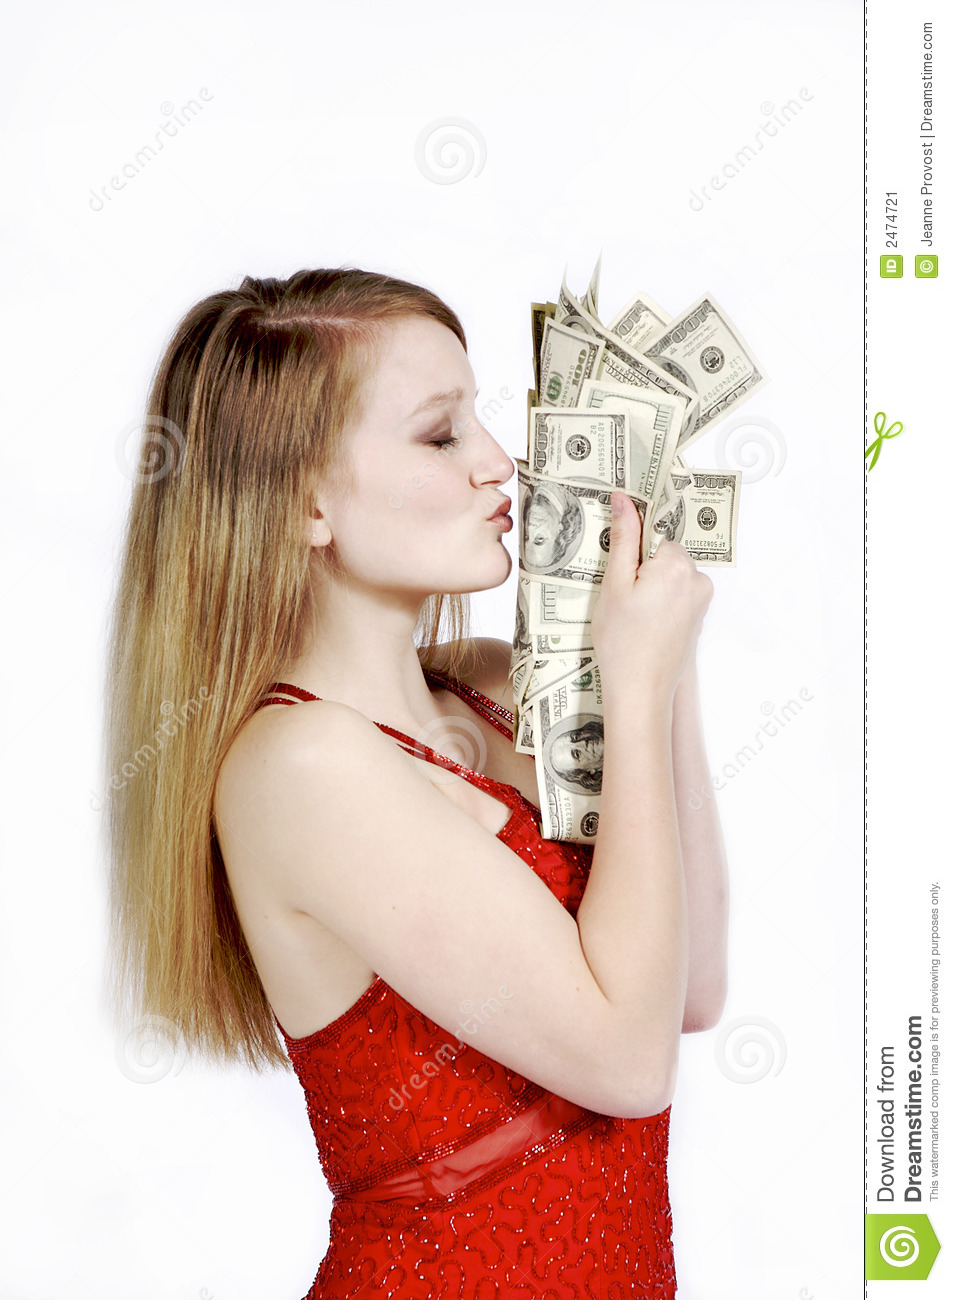 for the love of money is Dave ramsey shares about the dangers of loving money.